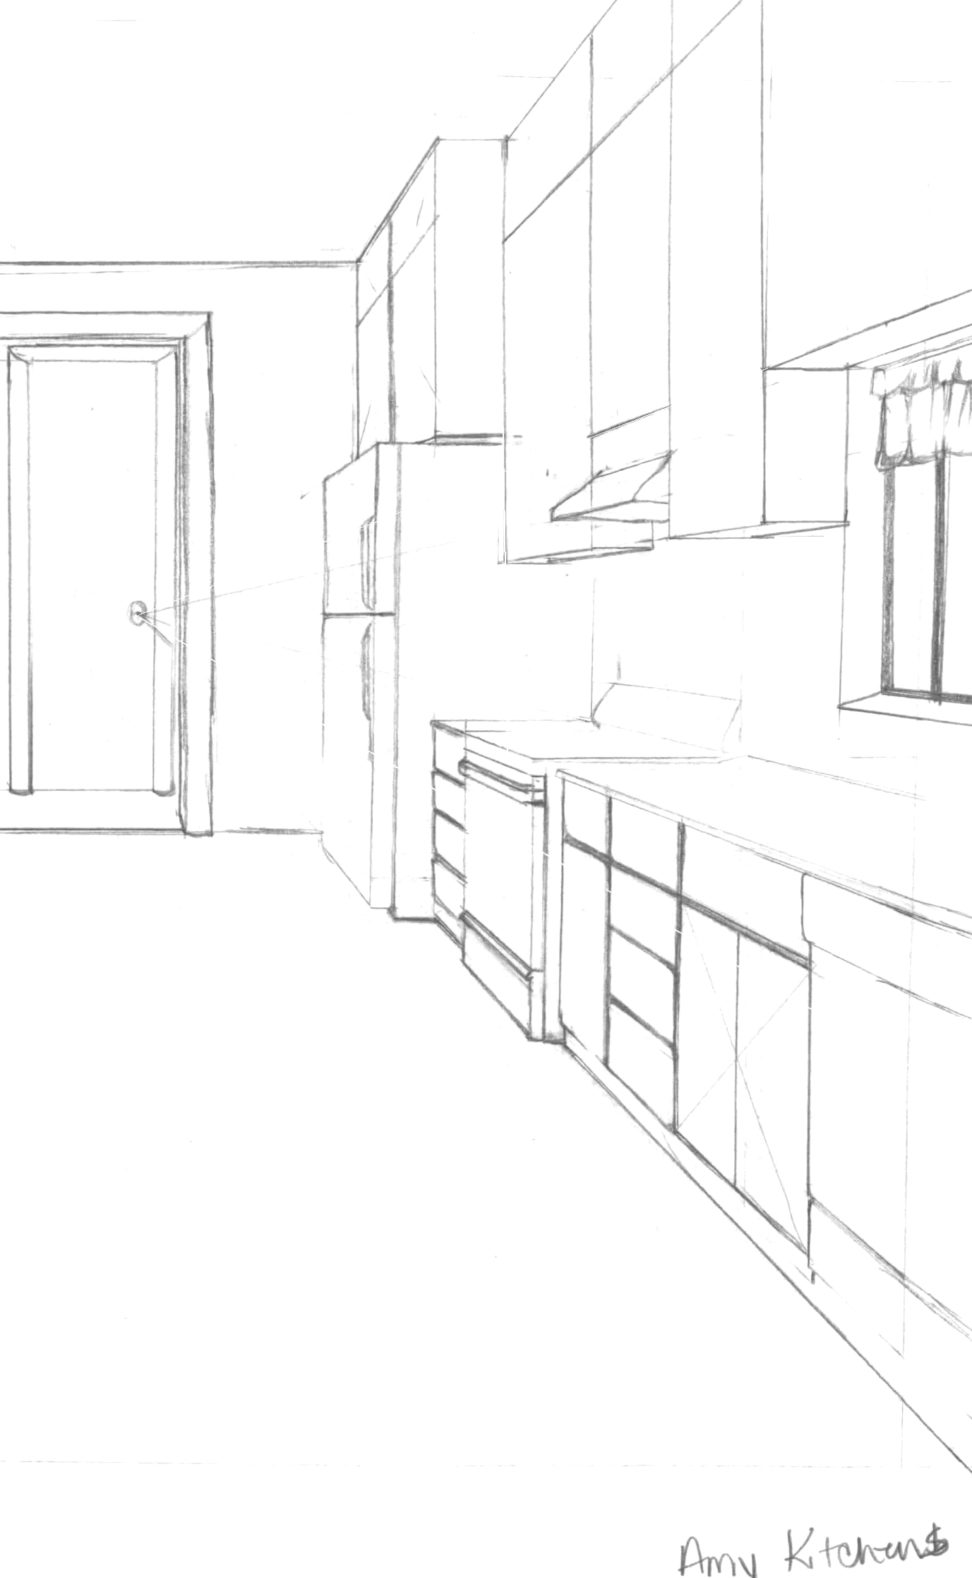 972x1578 Wonderful Sketch Design For Architecture Examples. Home Design